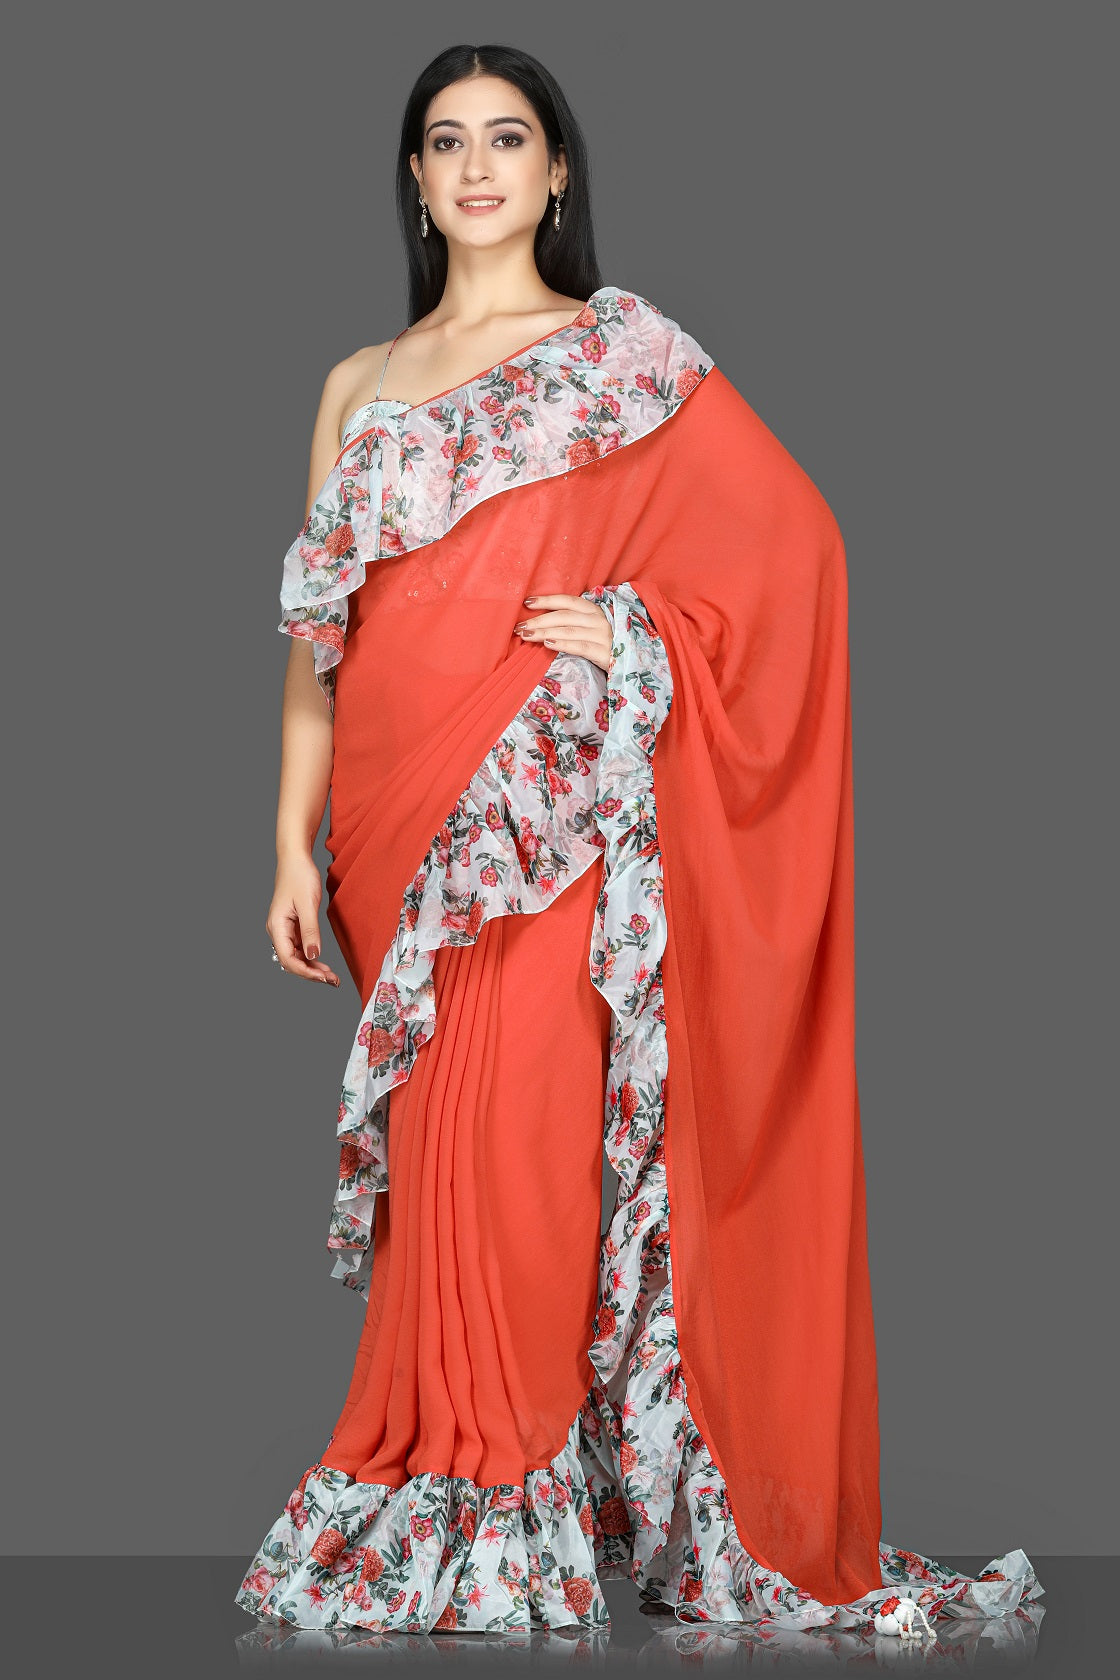 Shop red georgette floral ruffle sari online in USA with printed and embroidered saree blouse. Flaunt ethnic fashion with exquisite designer sarees with blouse. embroidered sarees, pure silk sarees from Pure Elegance Indian fashion boutique in USA.-full view